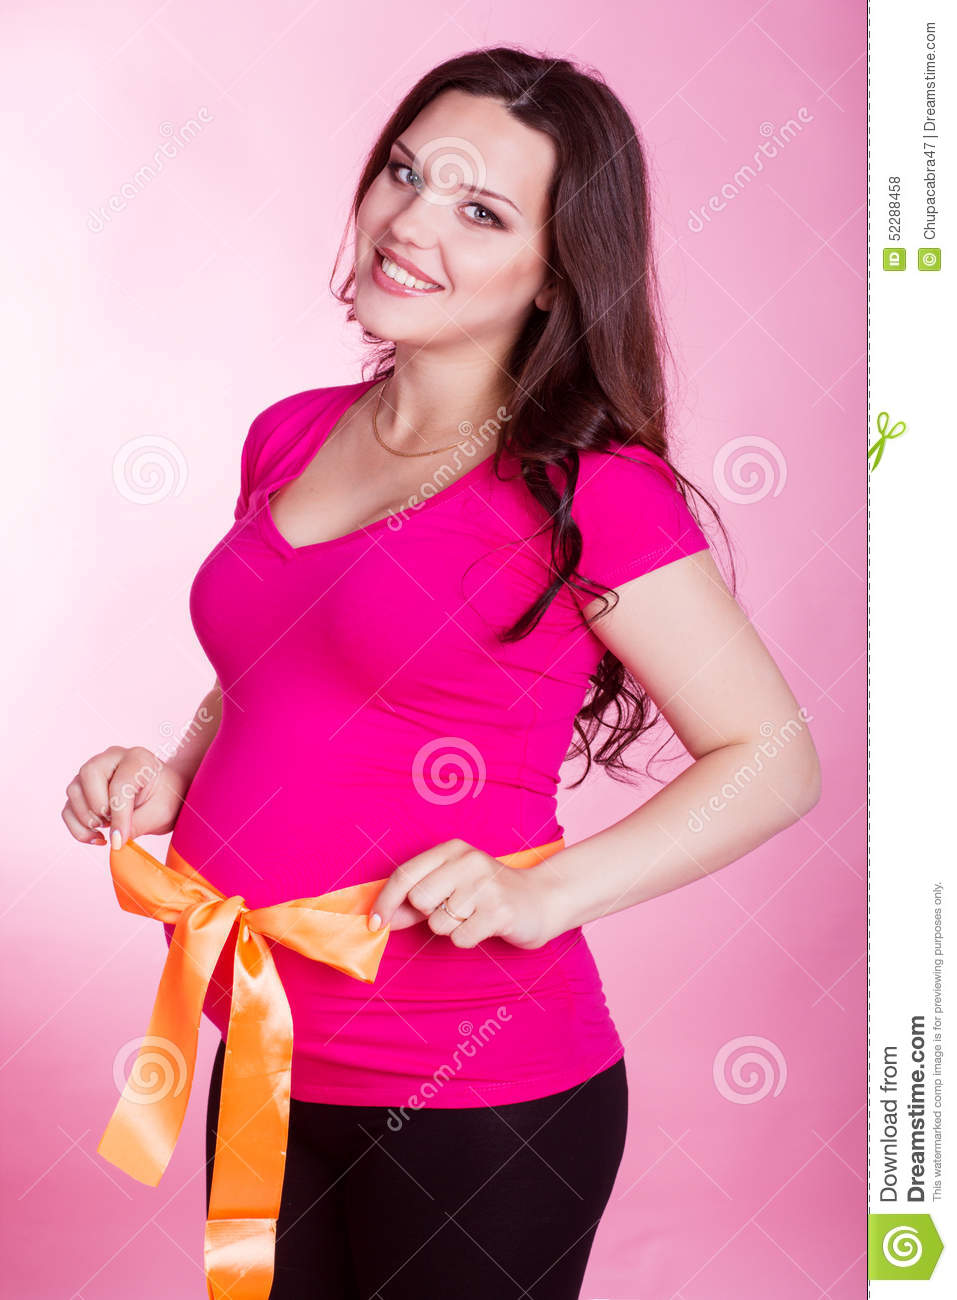 Pregnant woman with orange ribbon on her belly